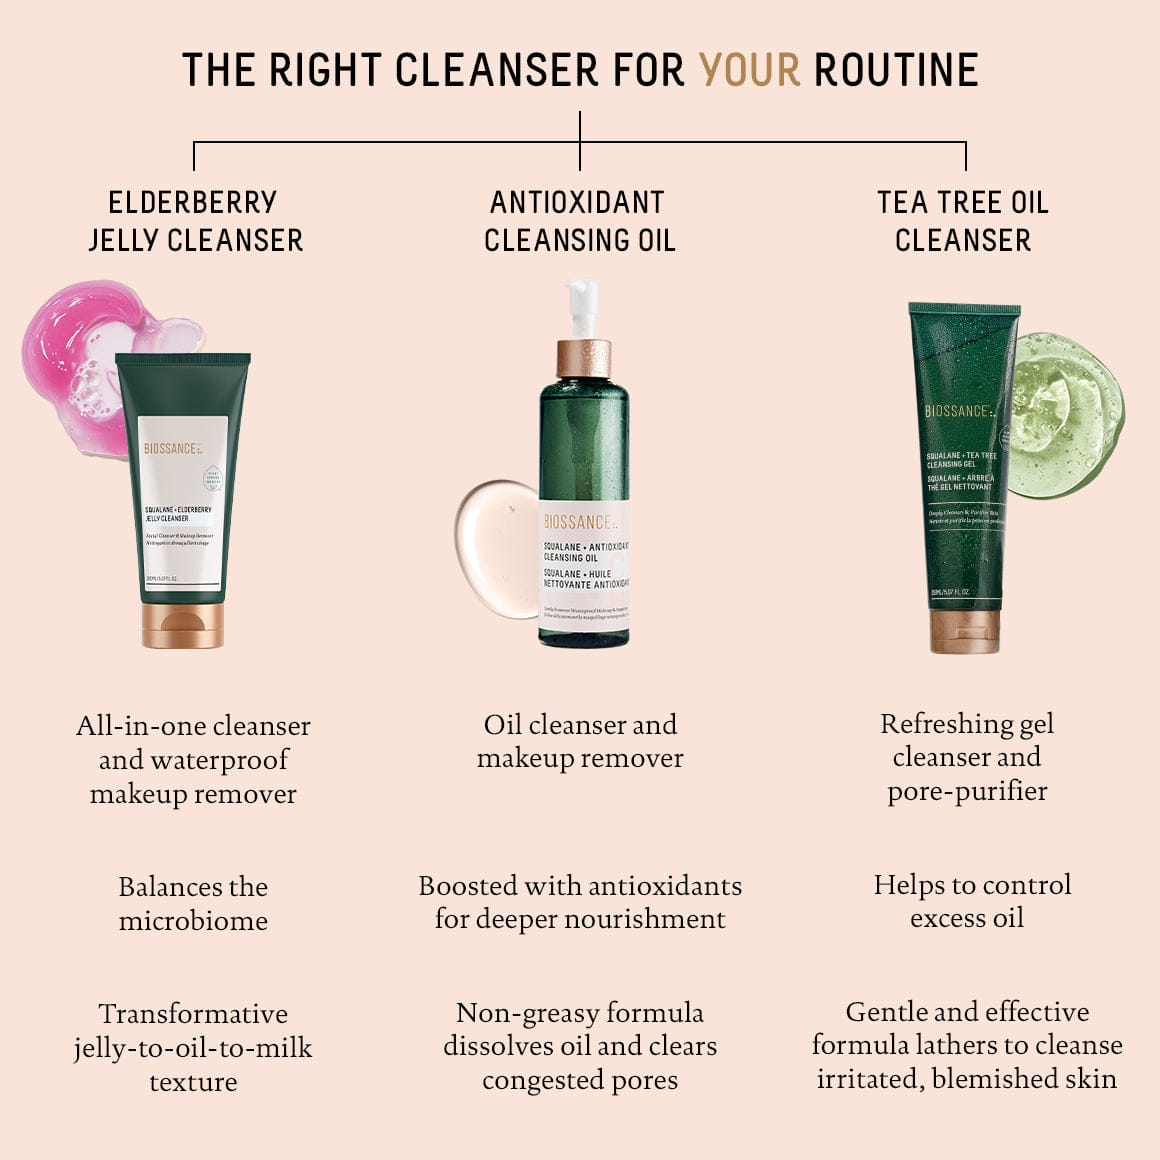 Squalane + Elderberry Jelly Cleanser